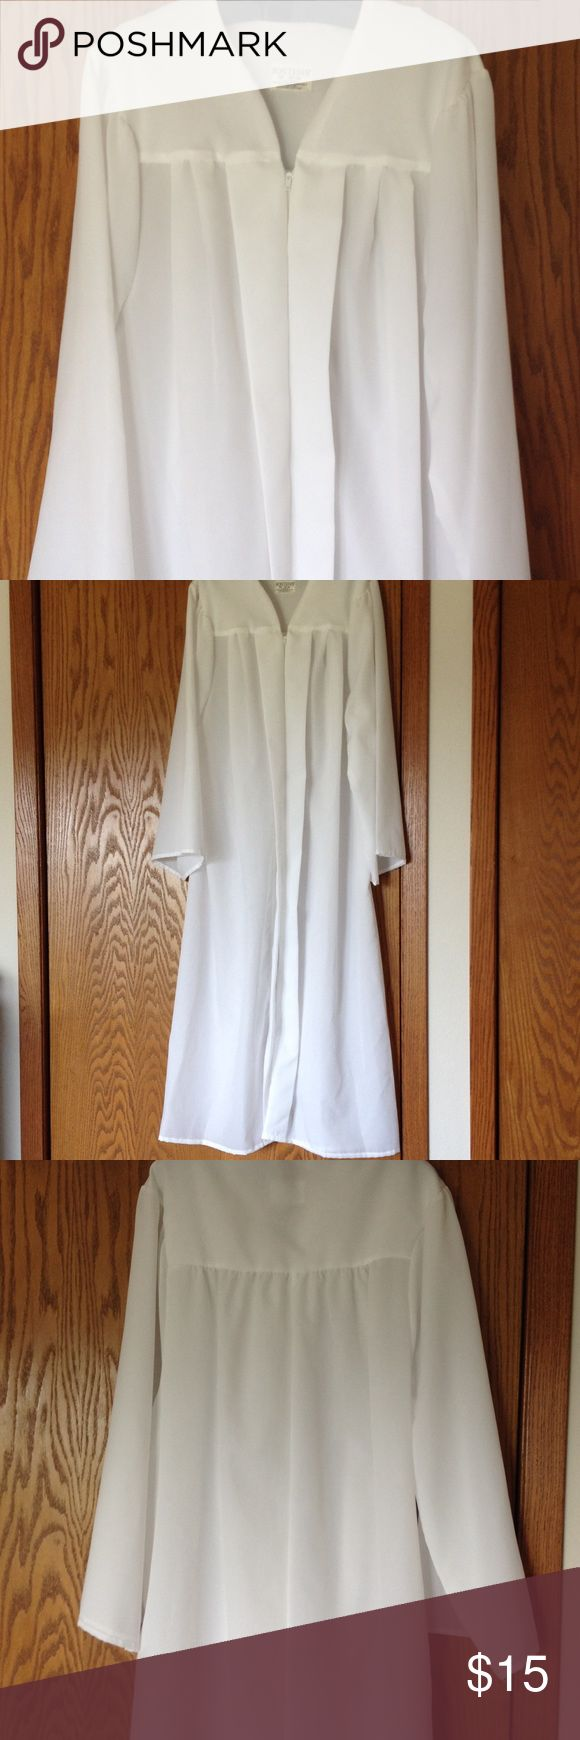 """White Jostens graduation gown and hat Size for 6' 01"""" - 6' 03"""". Cap and collar included. Josten Other"""